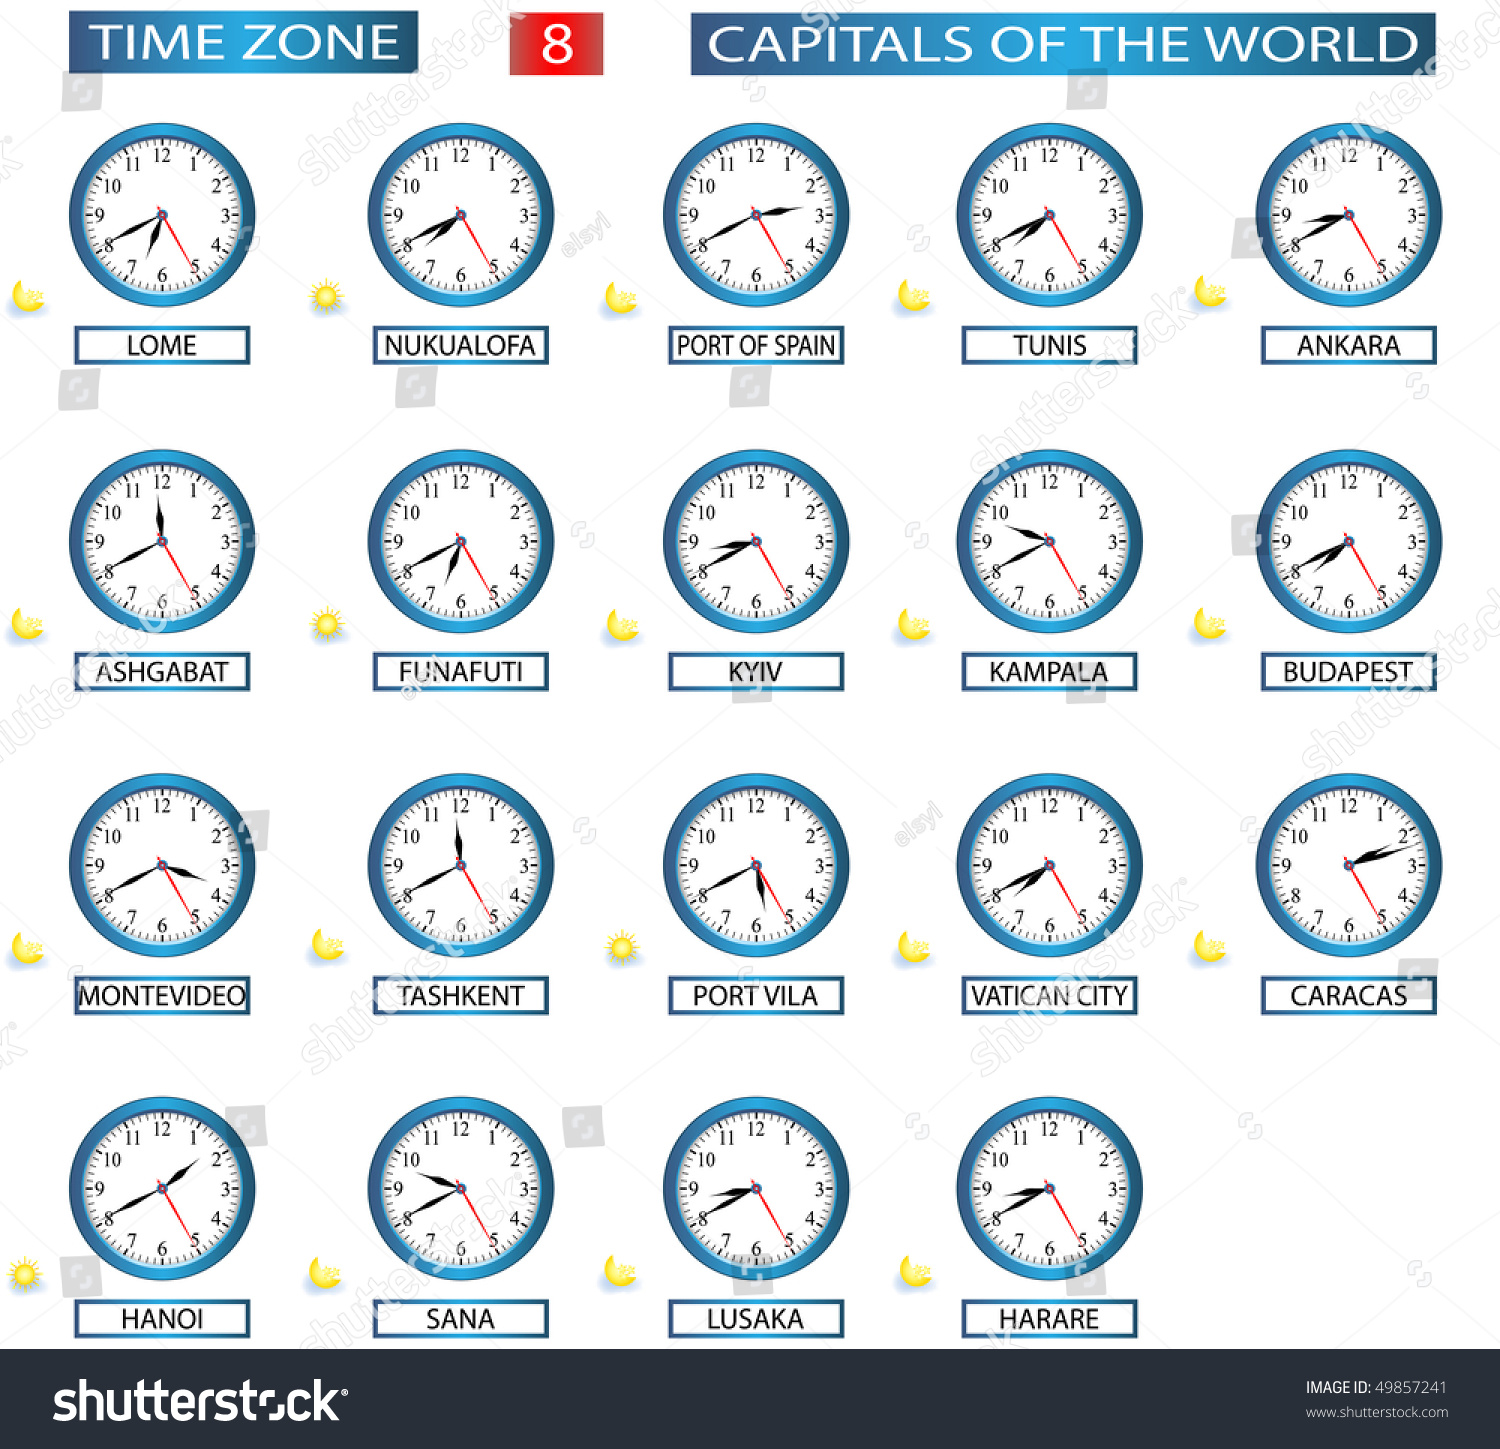 time zone 8 all capitals world stock vector shutterstock